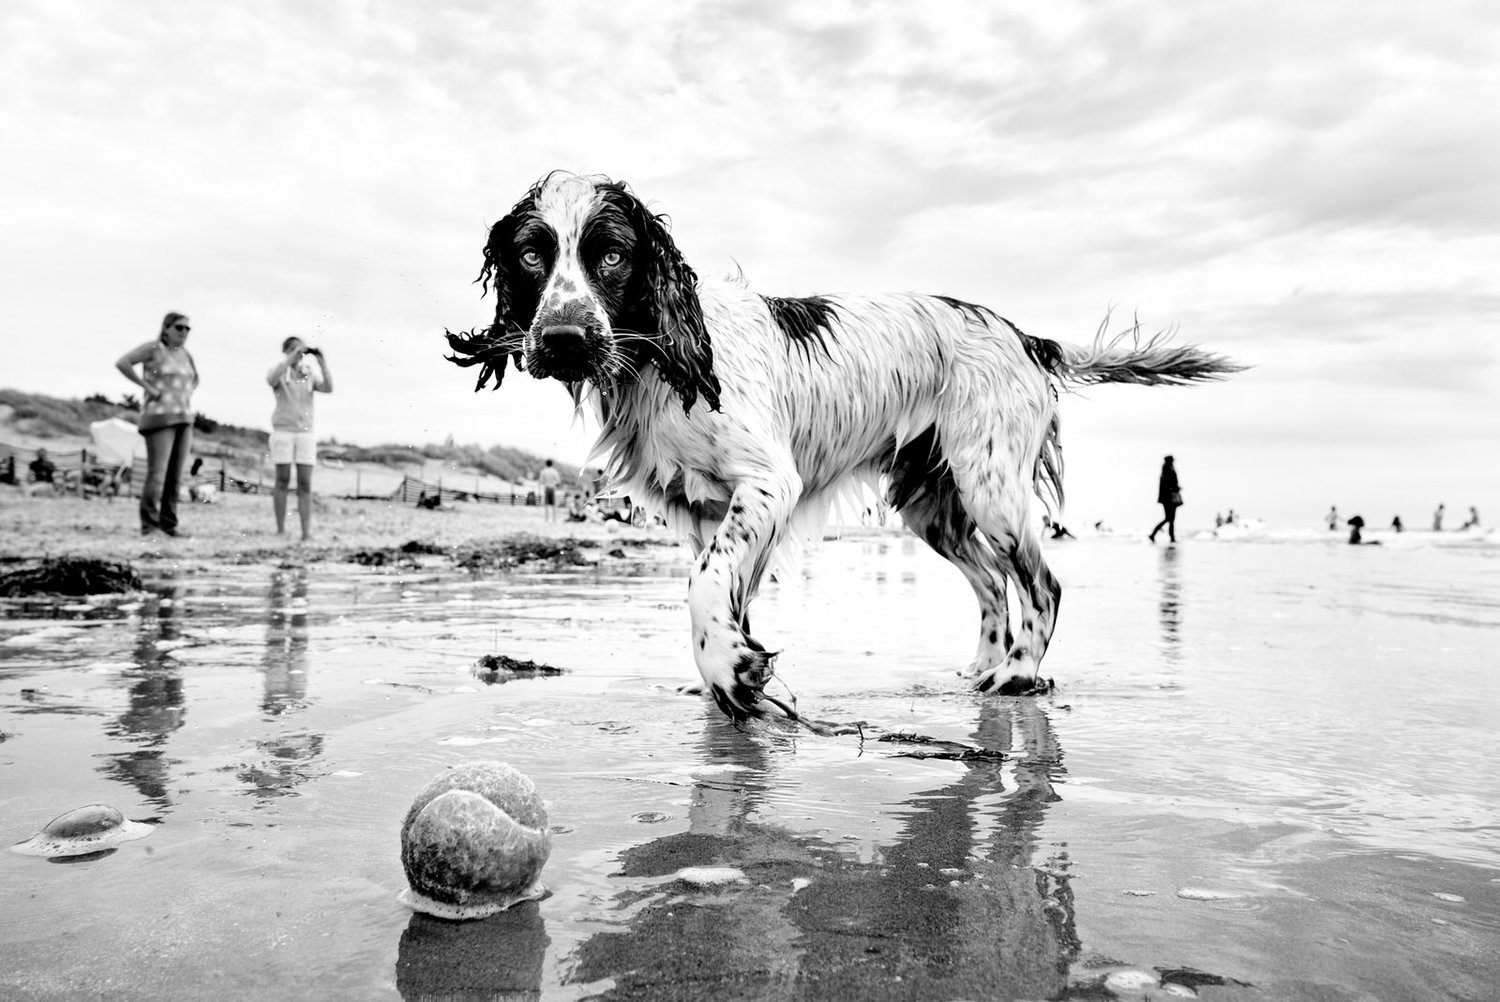 Alan Schaller - Street Photographer - Dogs 34.jpg